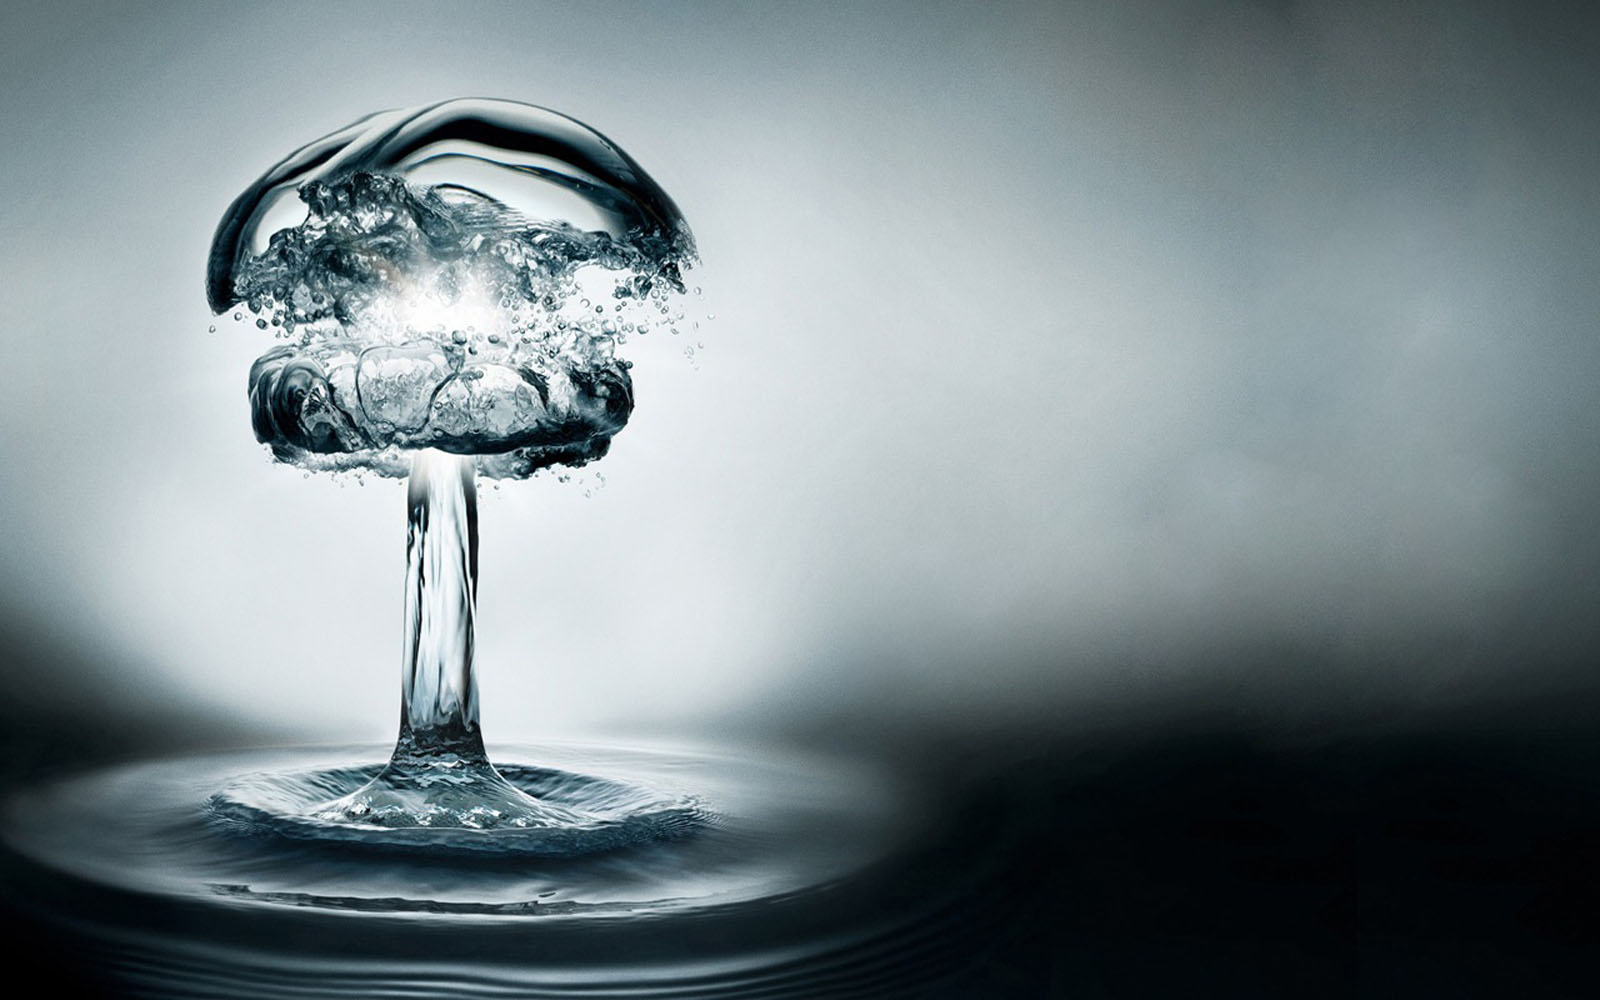 Tag: water splash wallpapers, images, photos and pictures for free